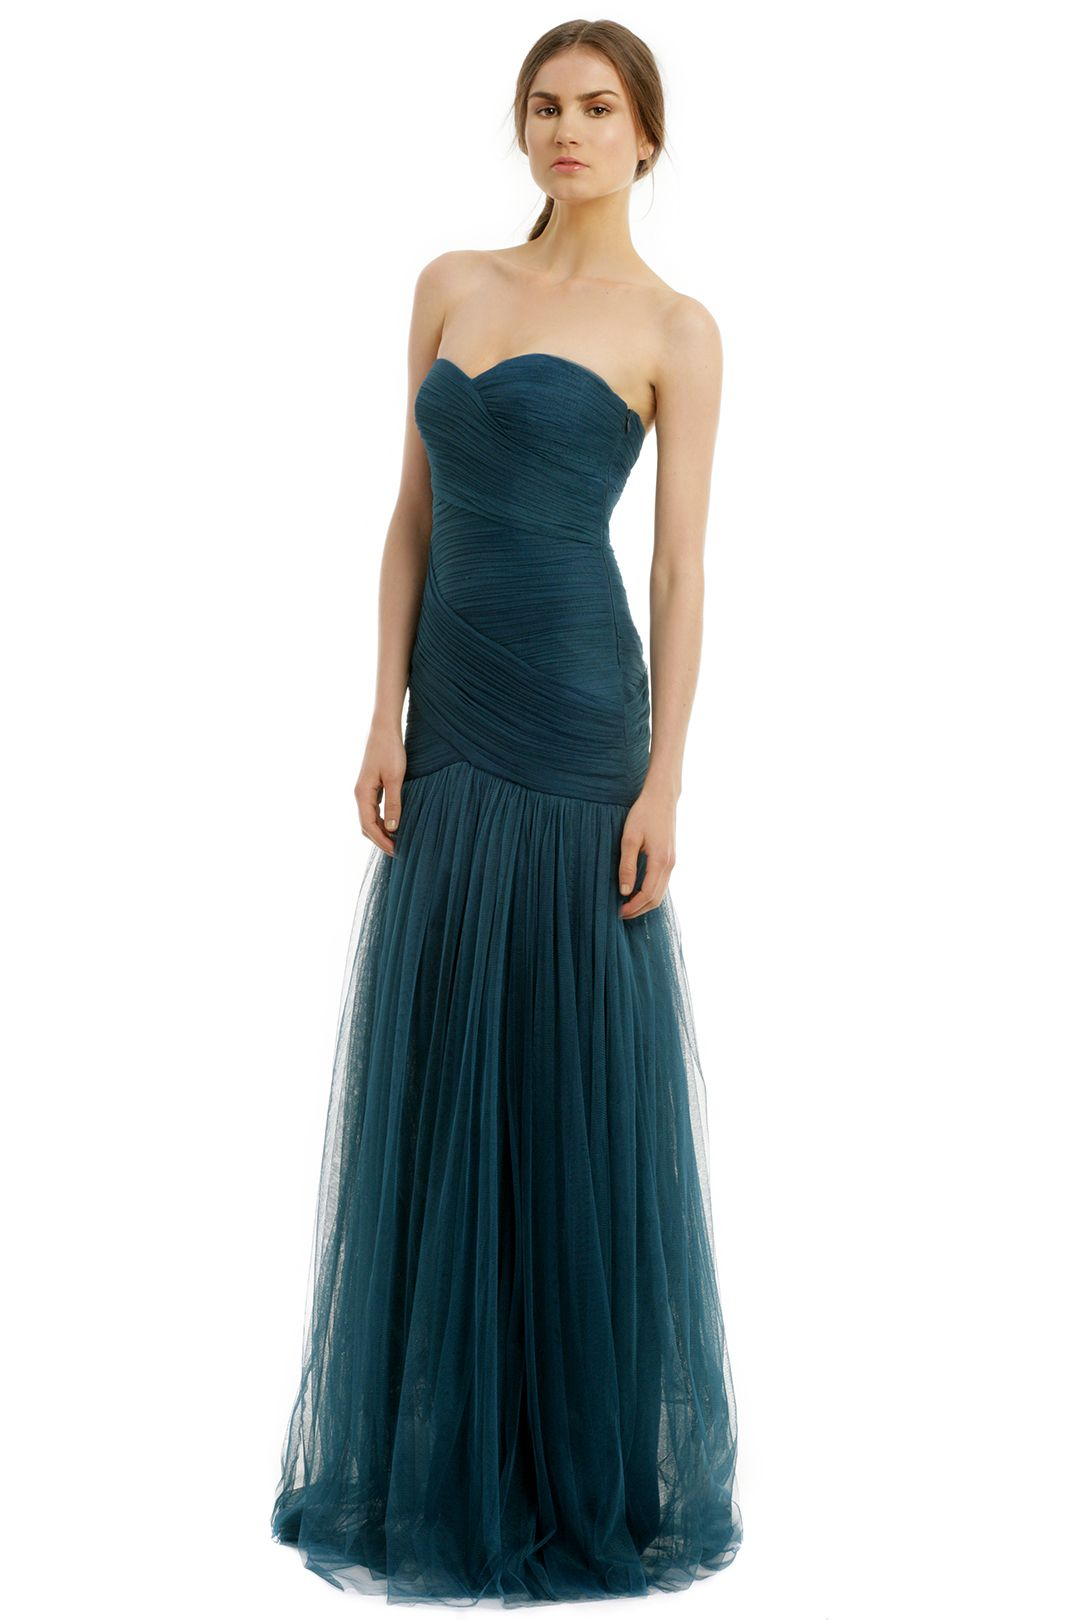 Synergy Gown | Clothes/accessories | Pinterest | Monique lhuillier ...